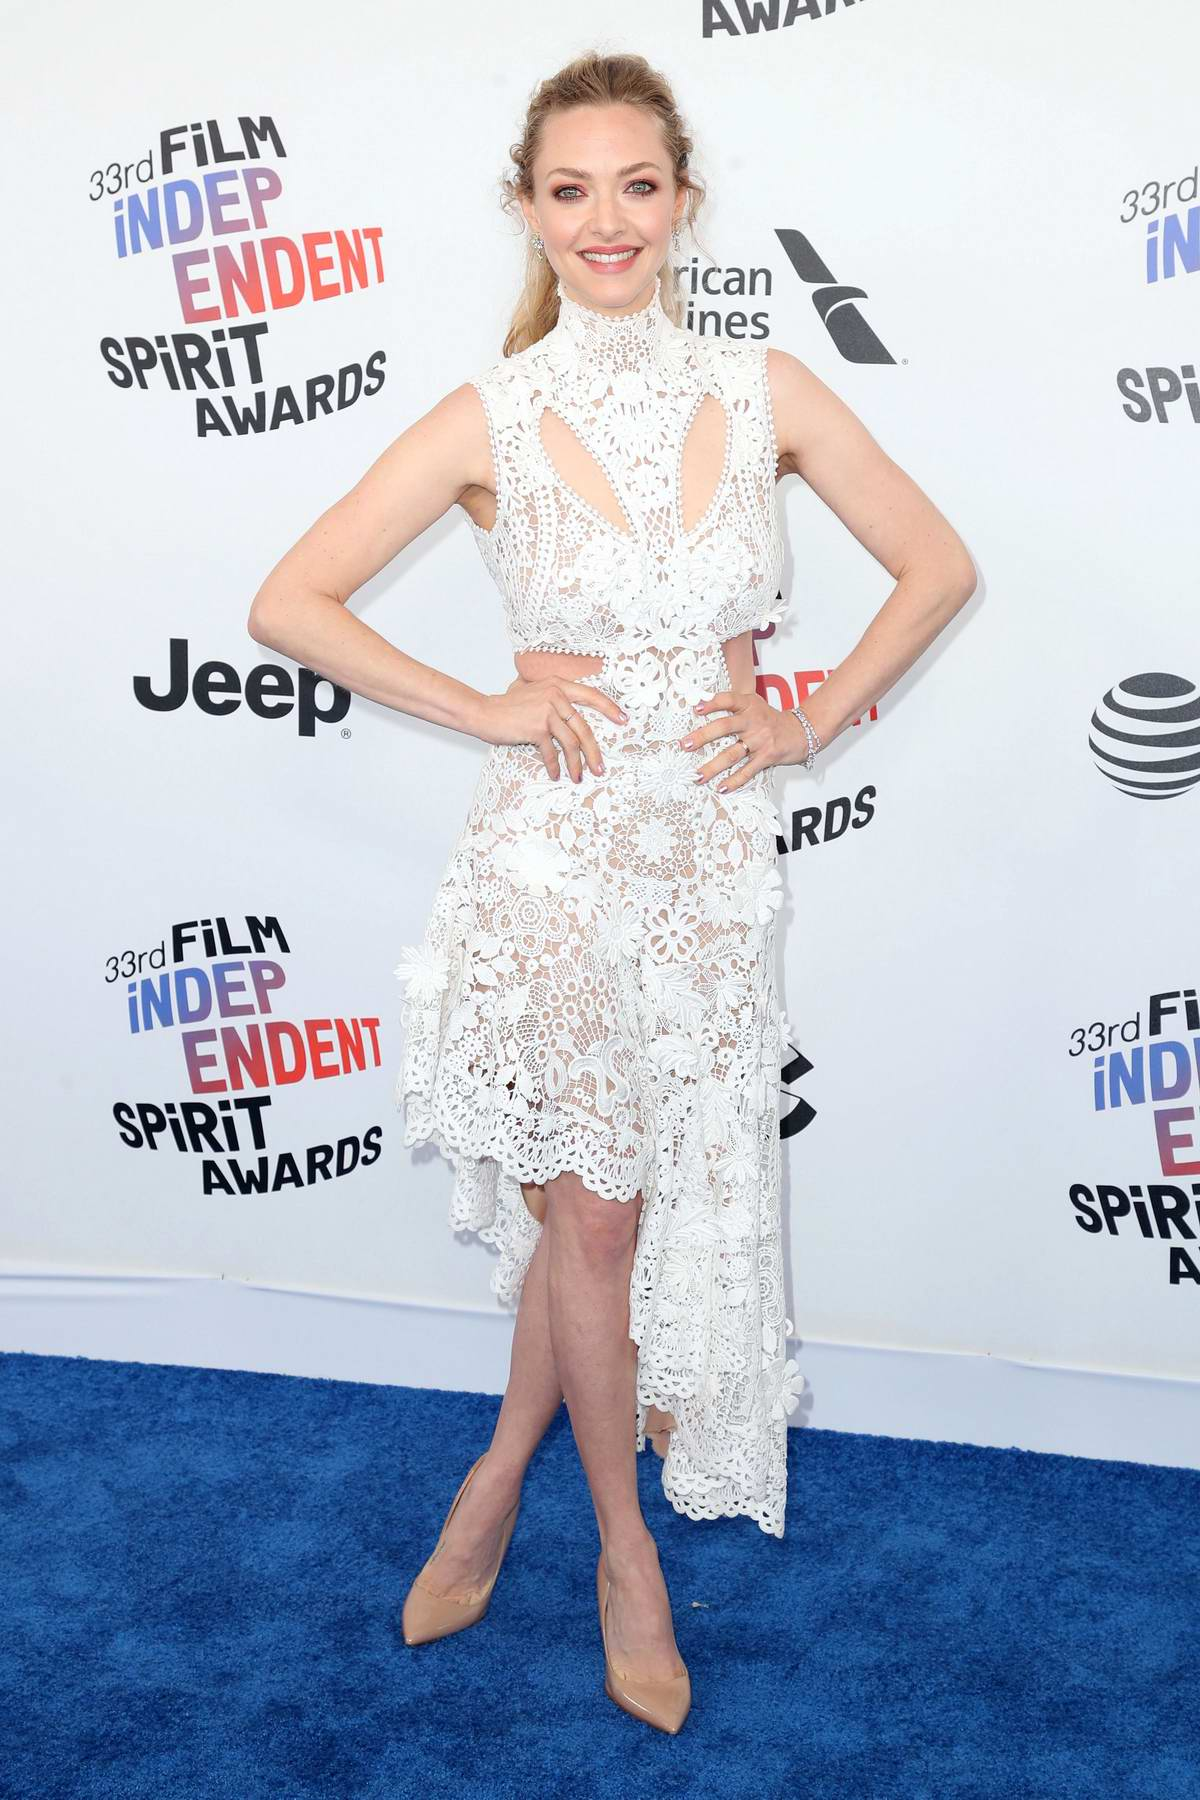 Amanda Seyfried attends the 33rd Film Independent Spirit Awards in Los Angeles